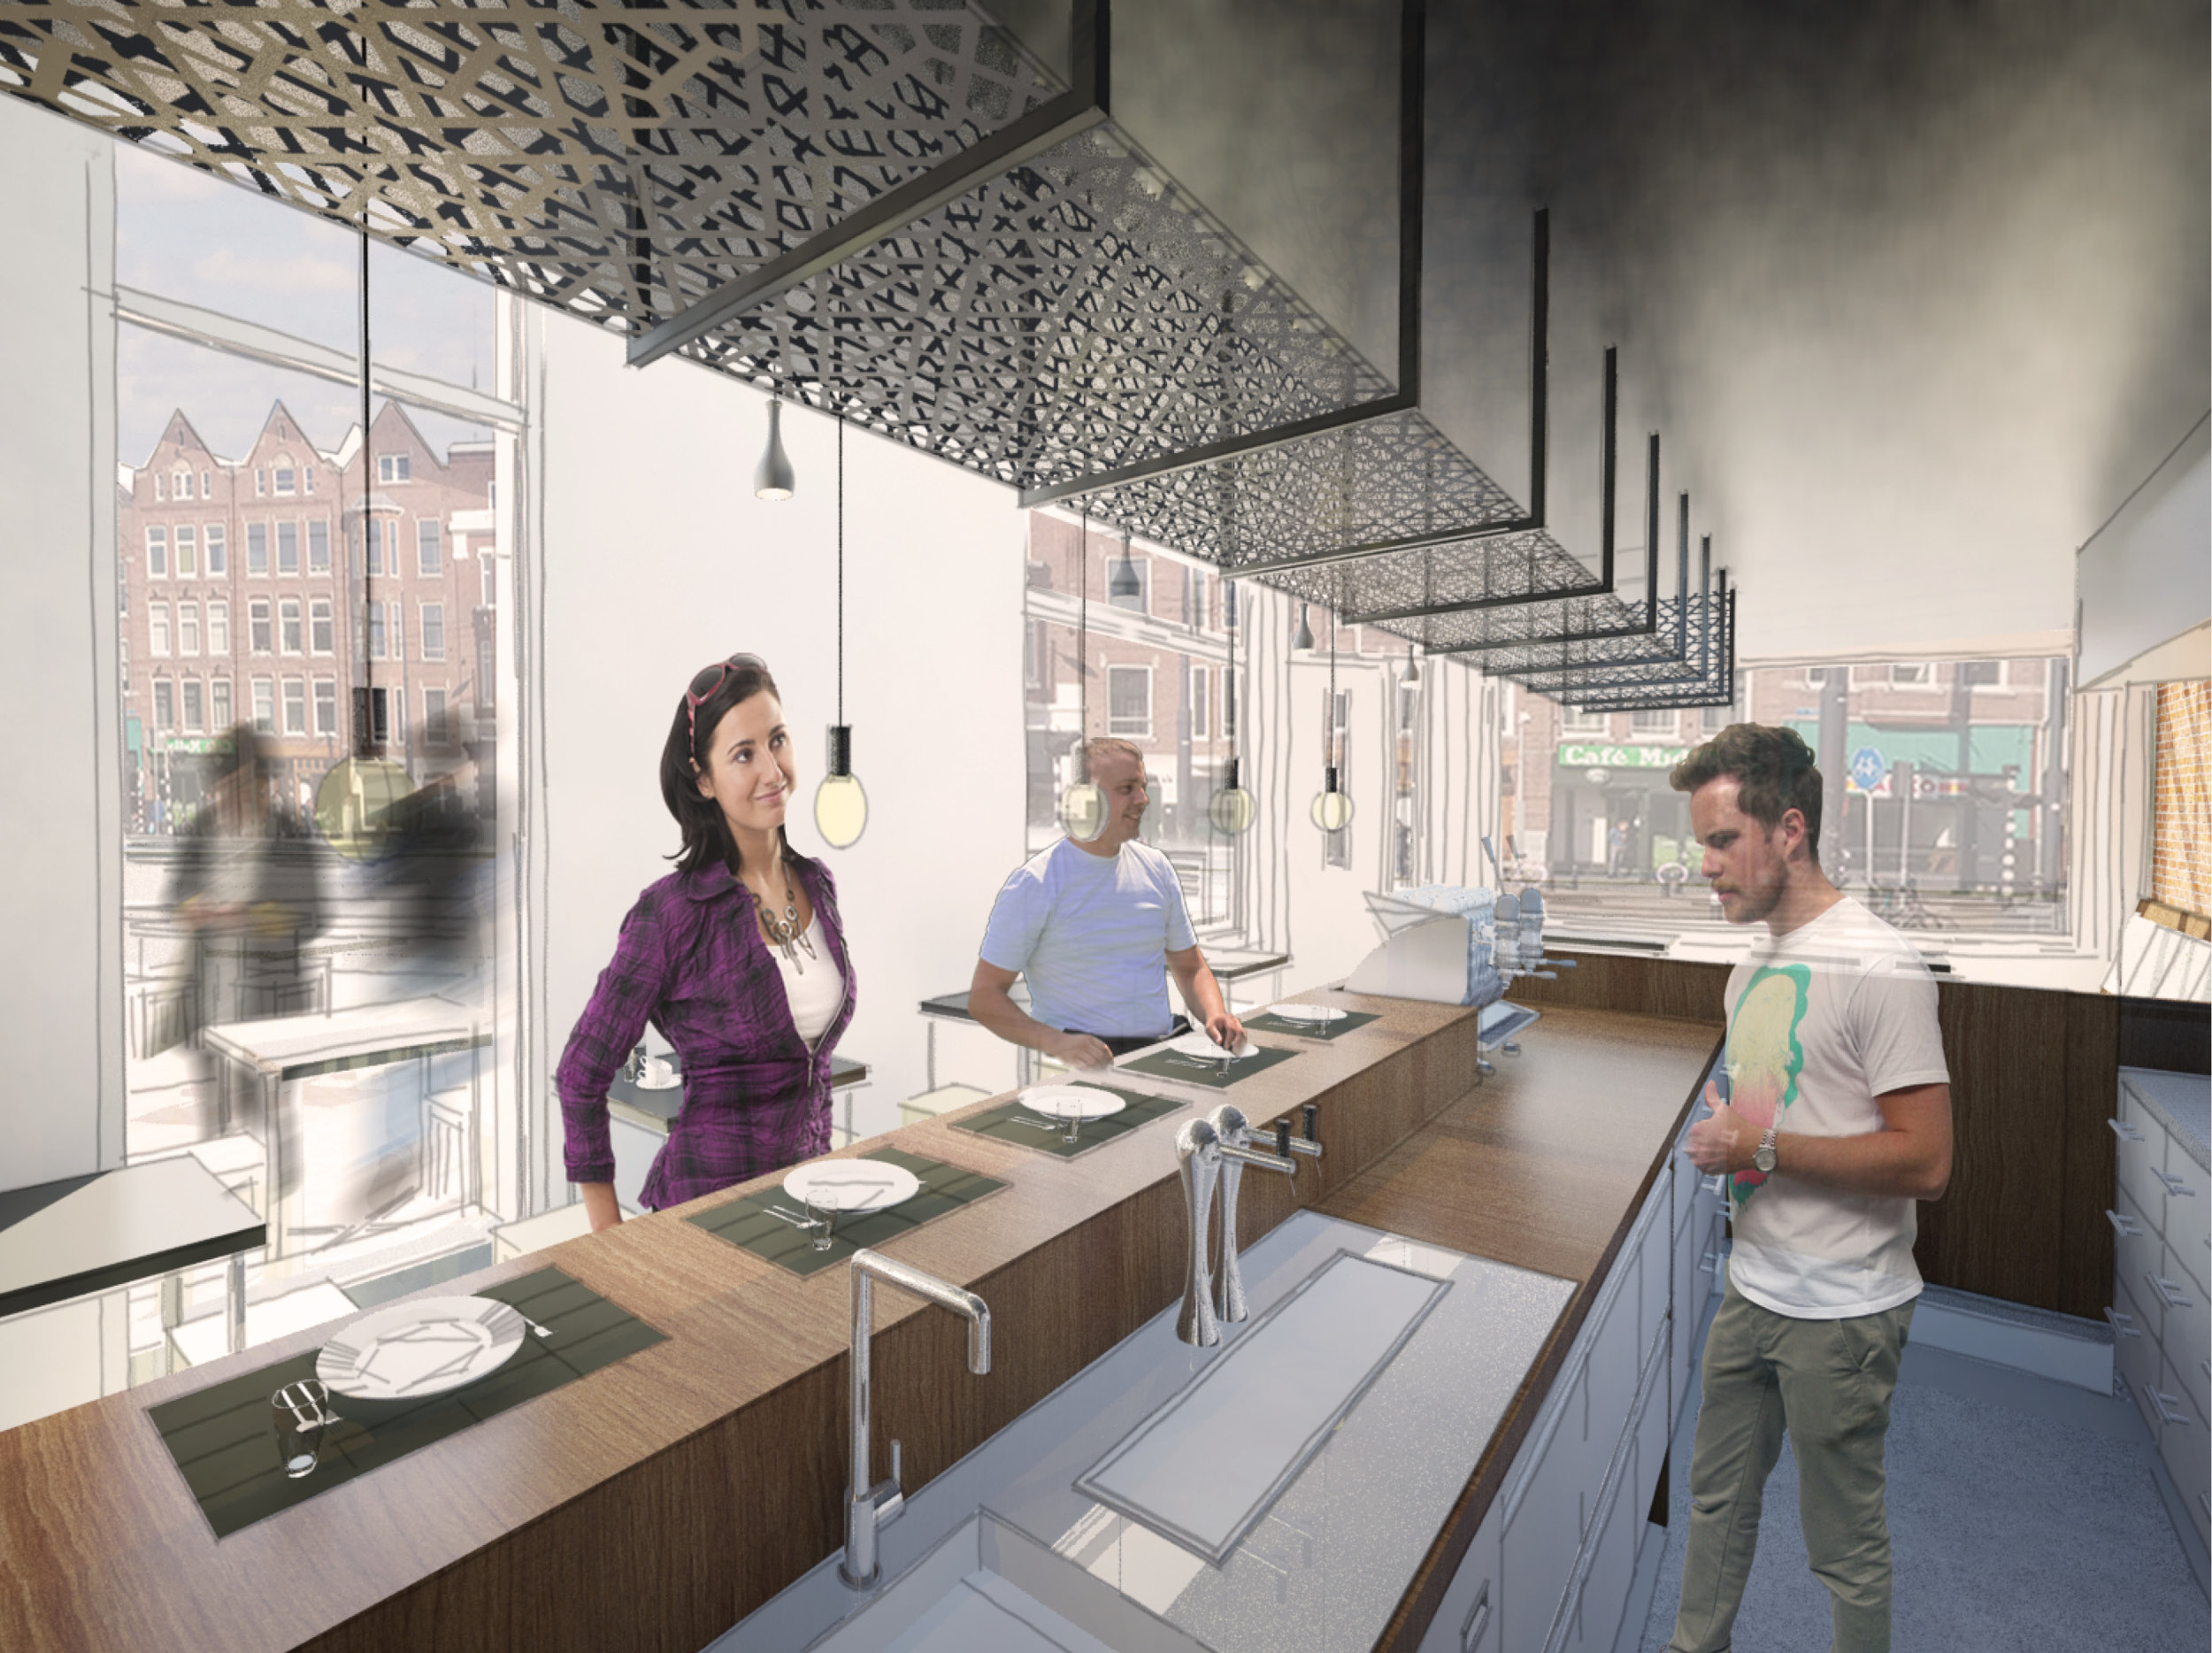 the slightly lowered floor of the bar makes sure people sitting at the bar are in direct contact with the bartender